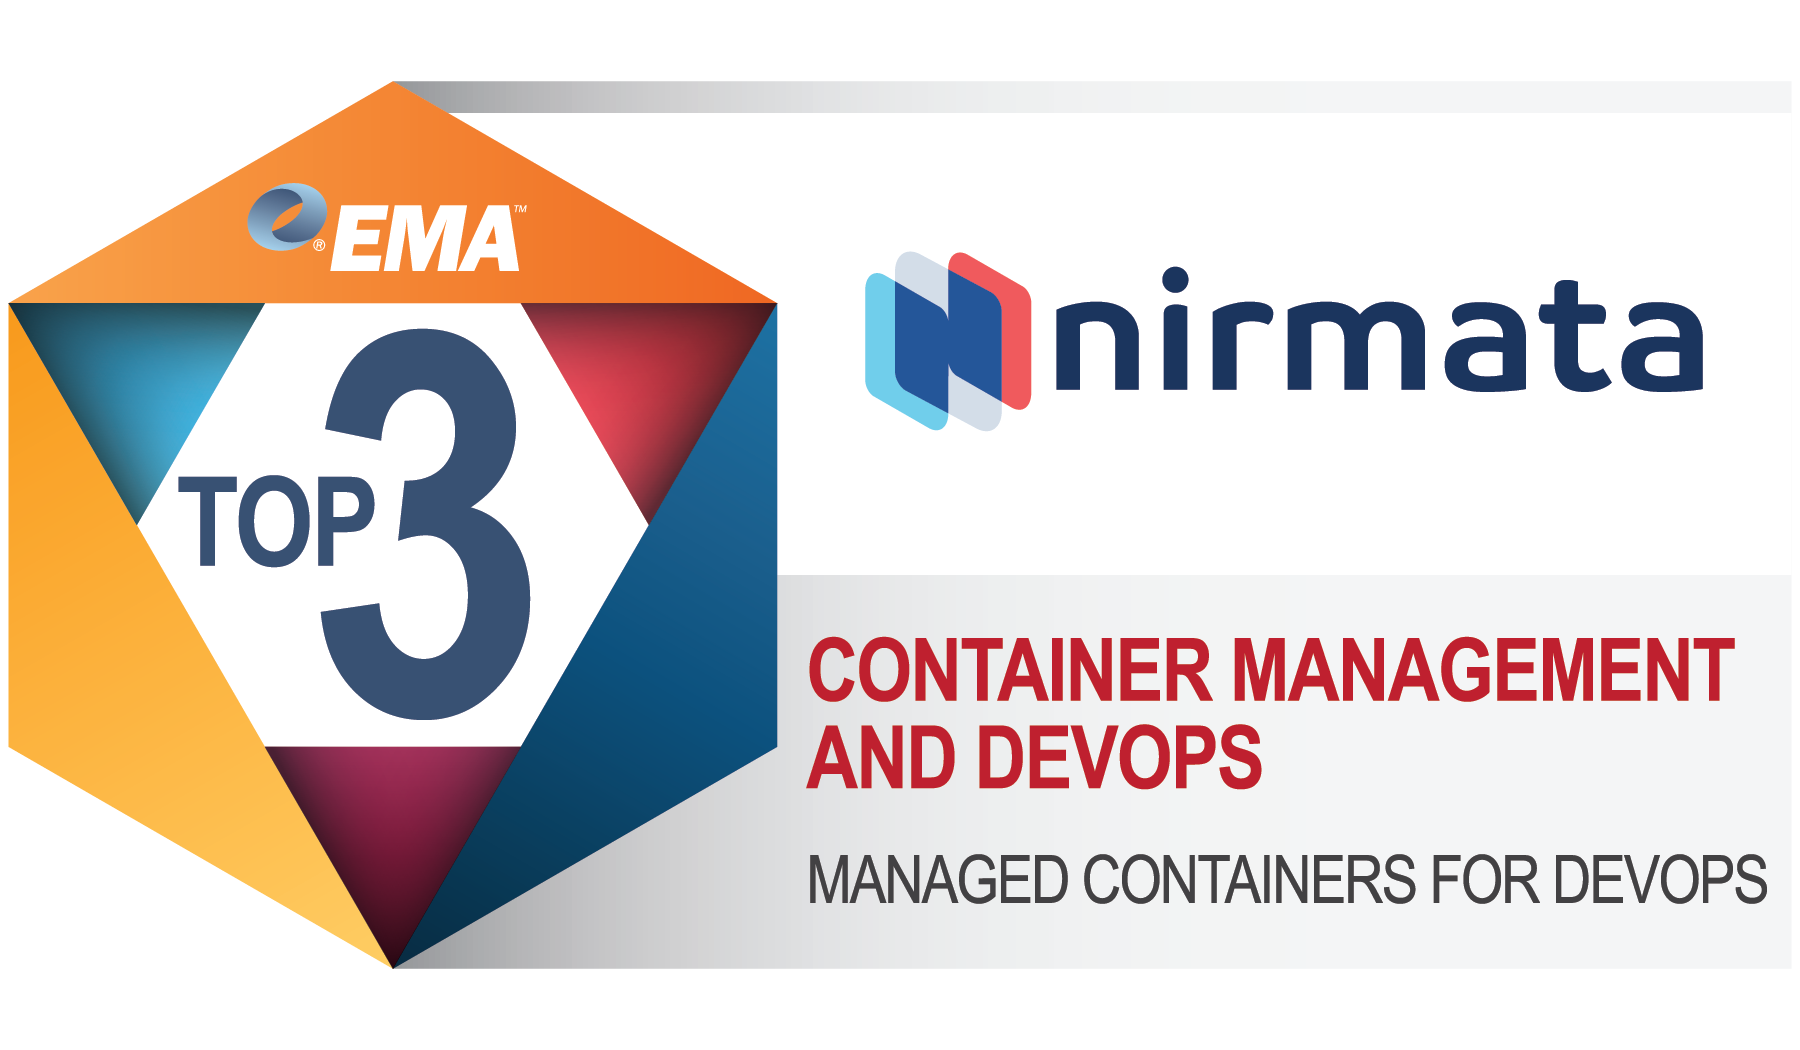 EMA-2018-Top3-Award-ManagedContainers-Nirmata.png